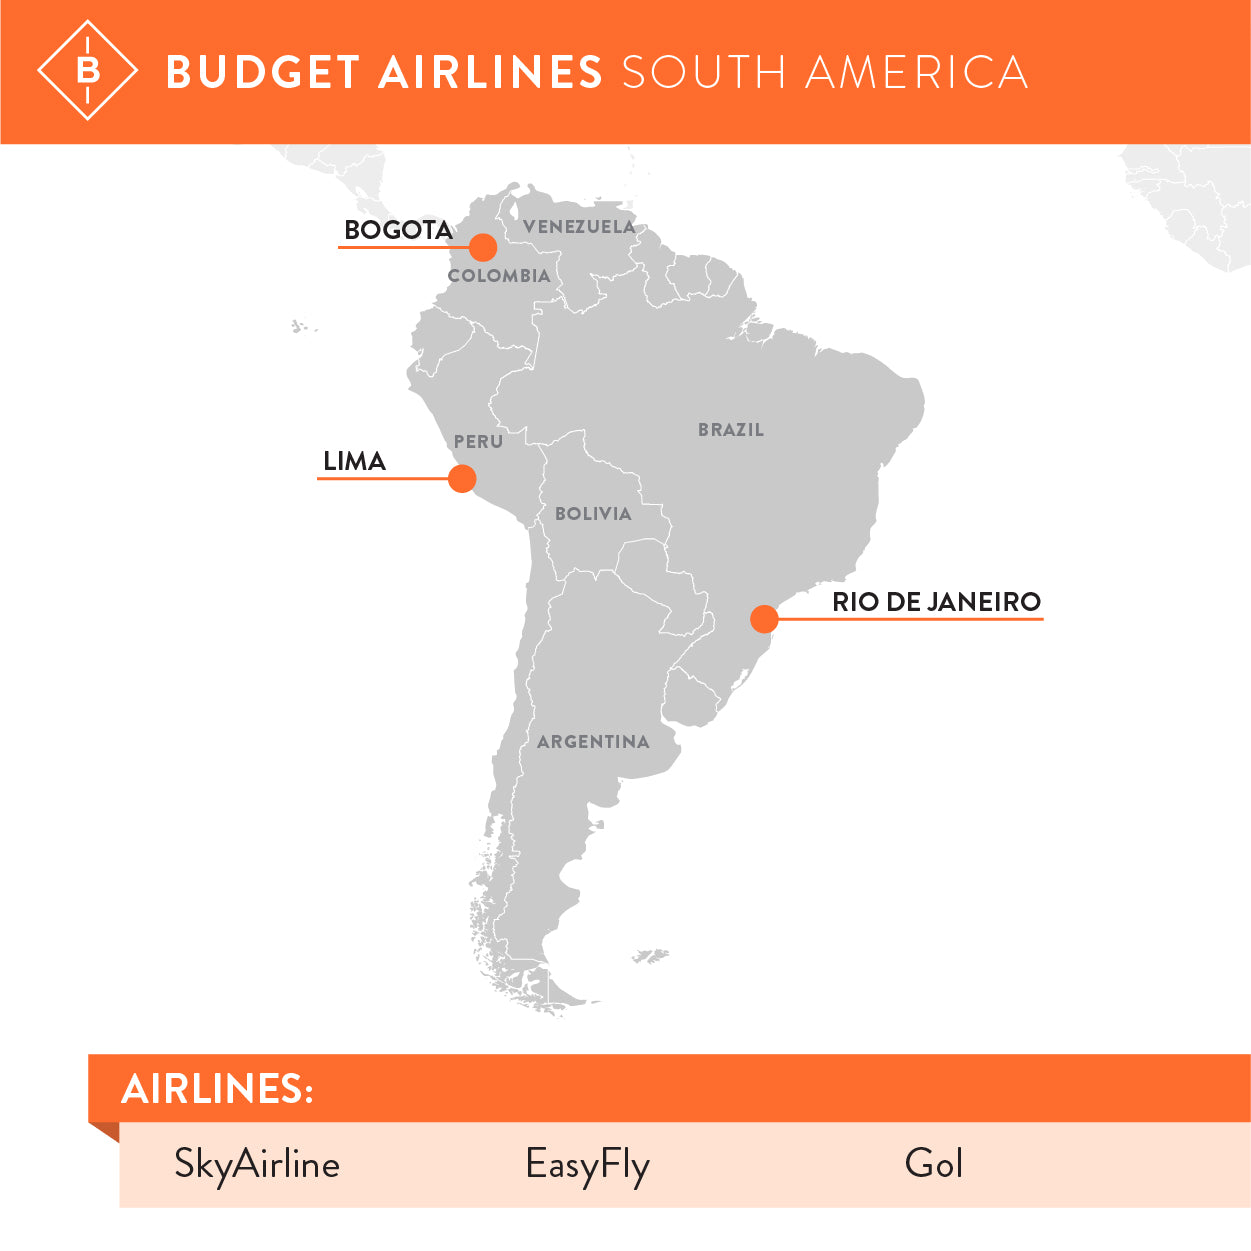 Low cost airline carriers in South America.